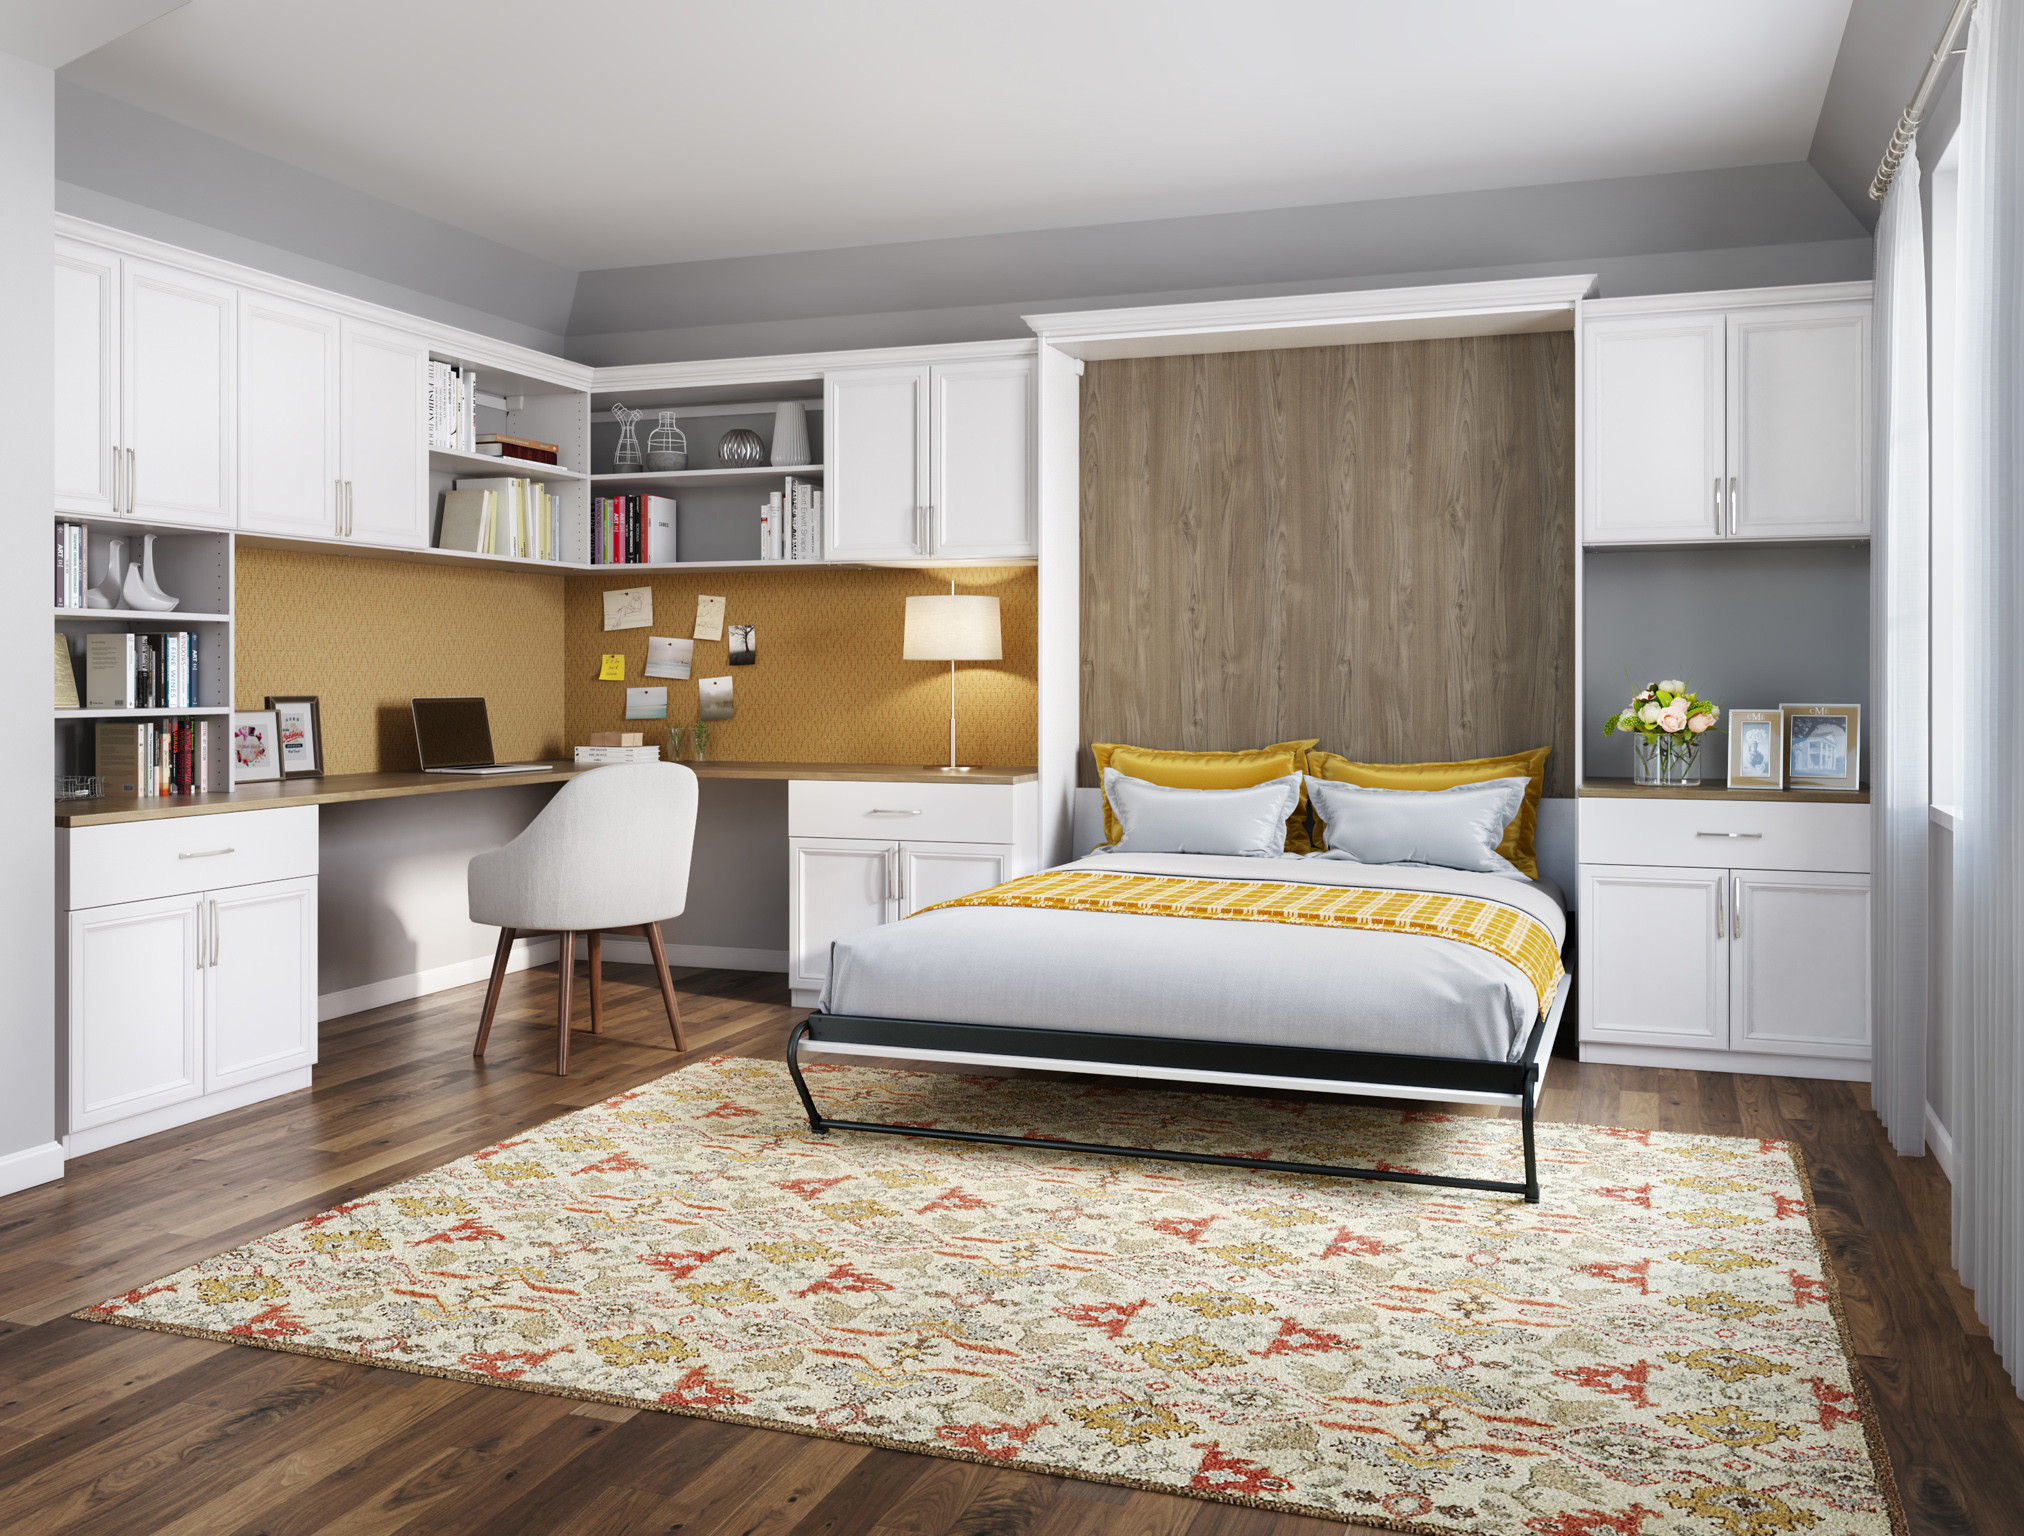 California Closets Dallas - Standard Wall Bed System